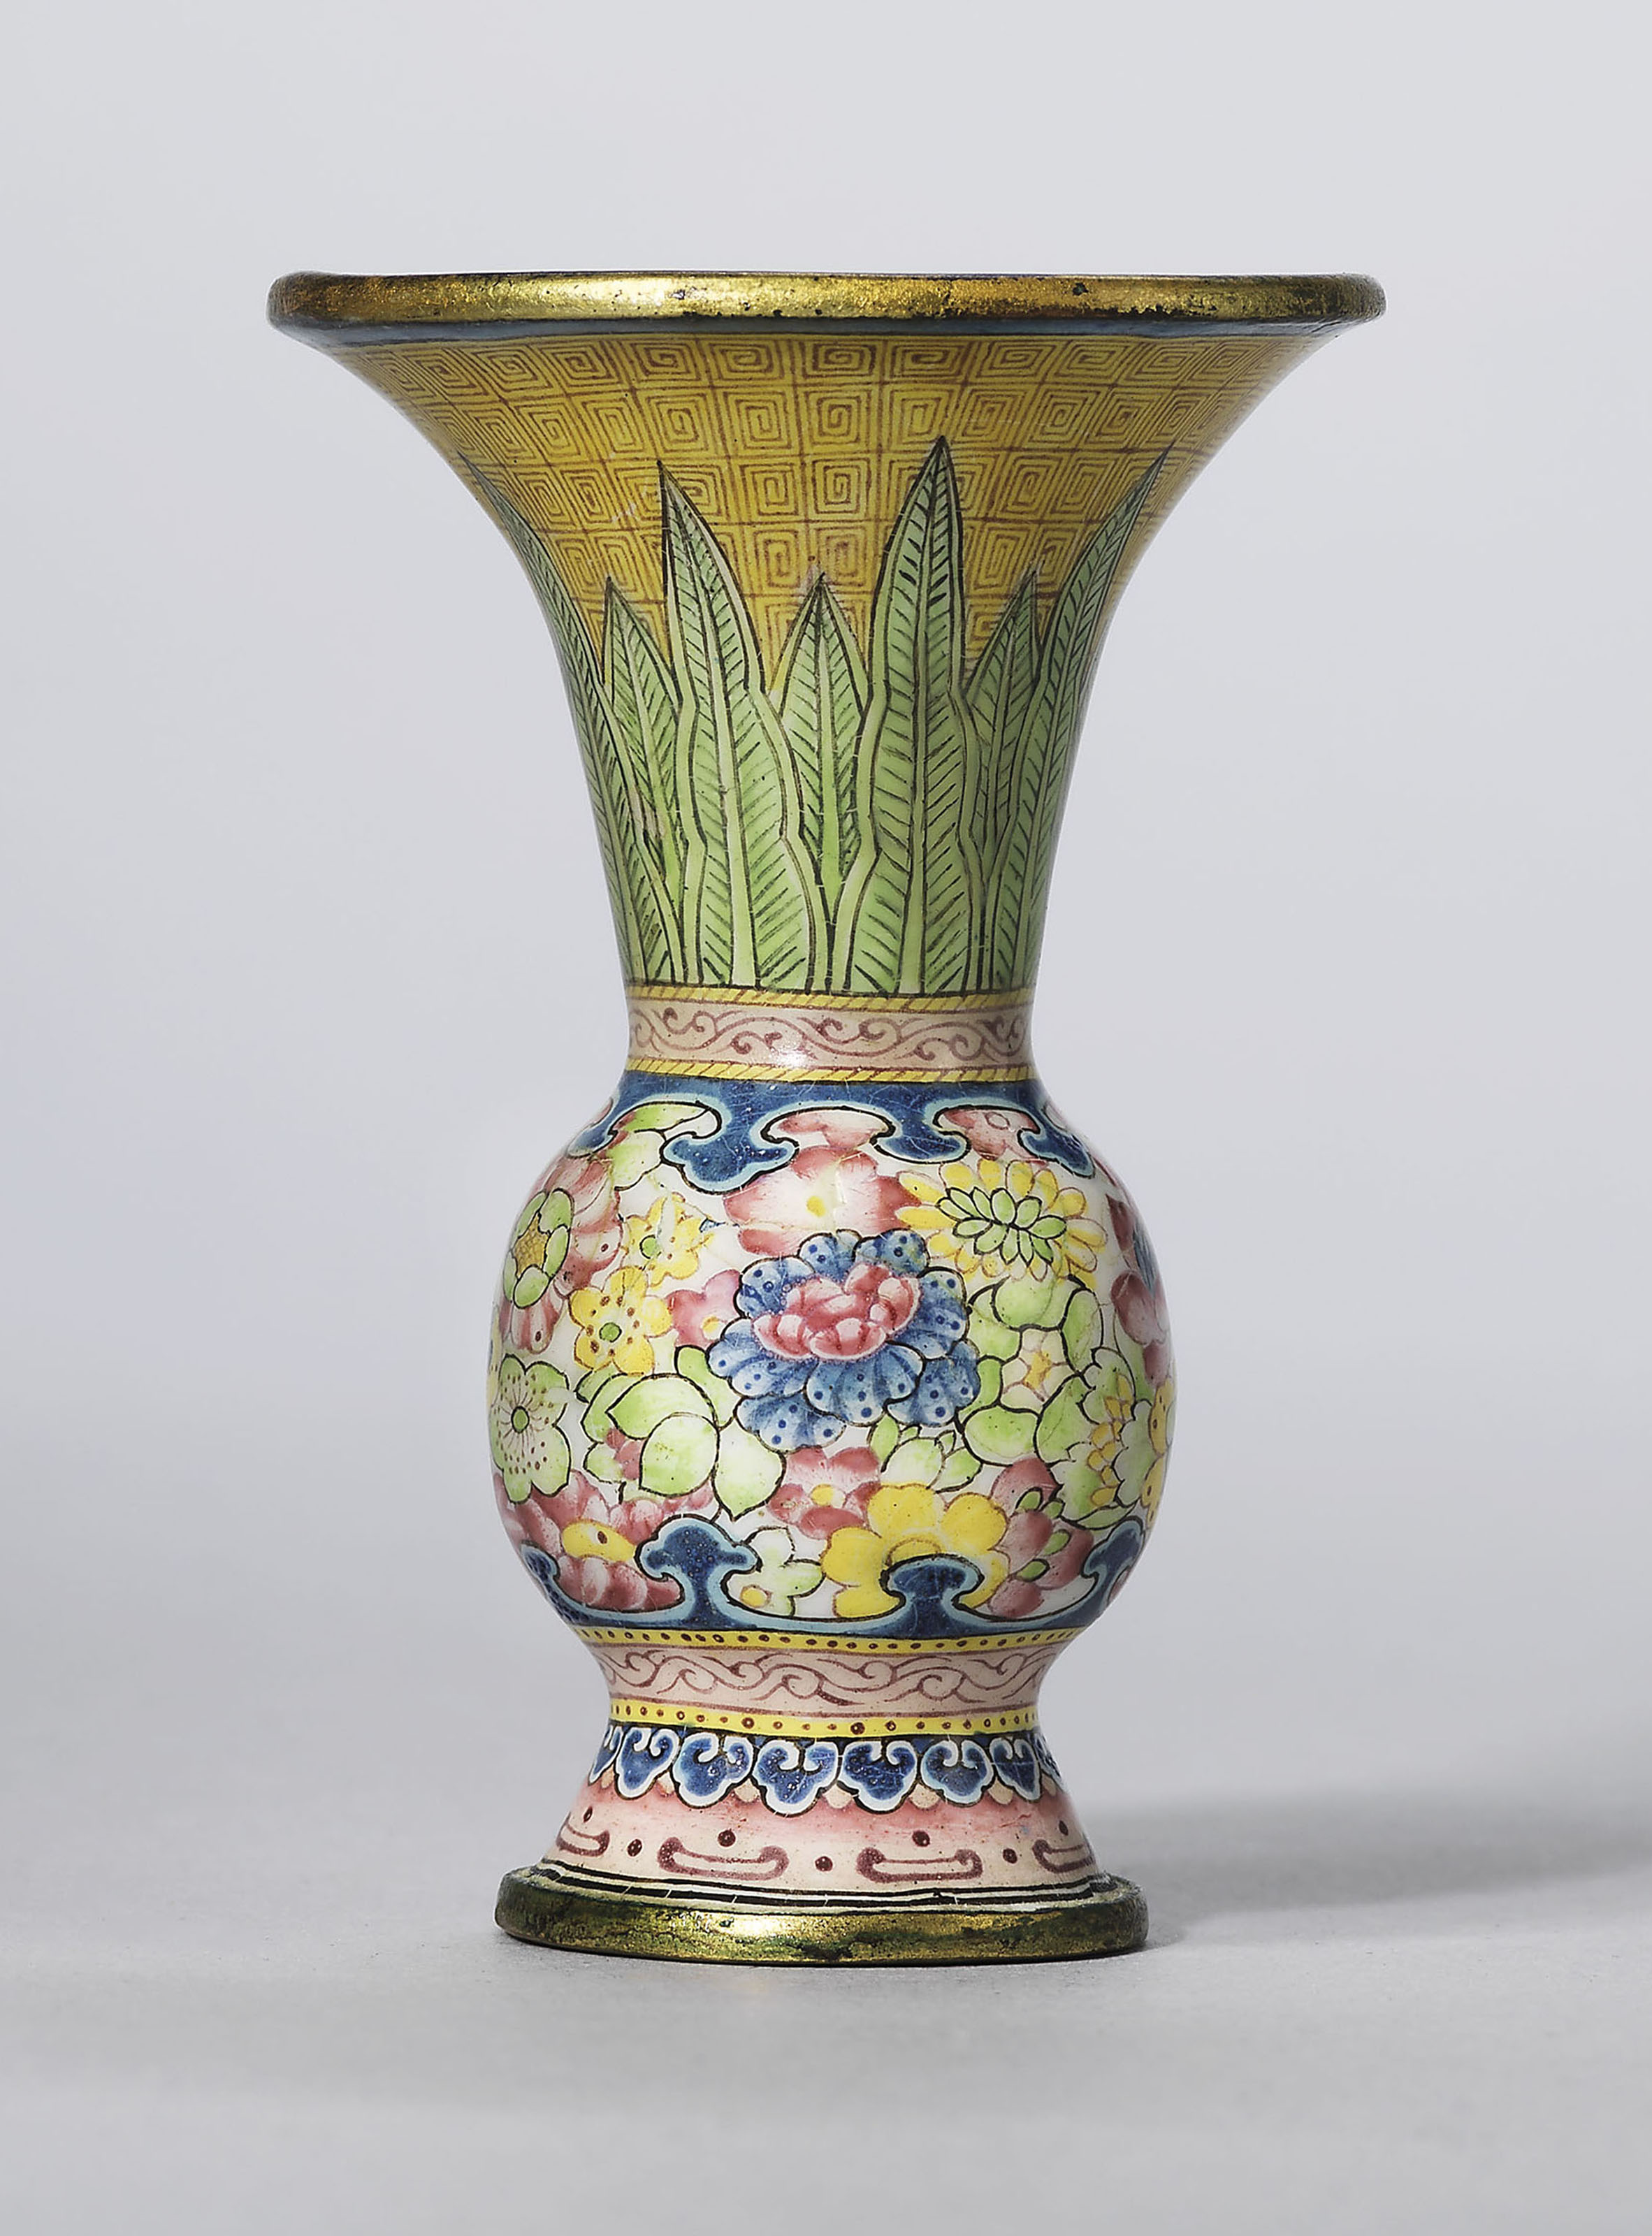 A rare painted enamel gu-shaped miniature vase, Qianlong four-character mark in blue enamel and of the period (1736-1795). 2½  in (6.4  cm) high. Estimate £30,000-50,000. Offered in Rarity and Refinement Treasures from a Distinguished East Asian Collection on 15 May at Christie's in London